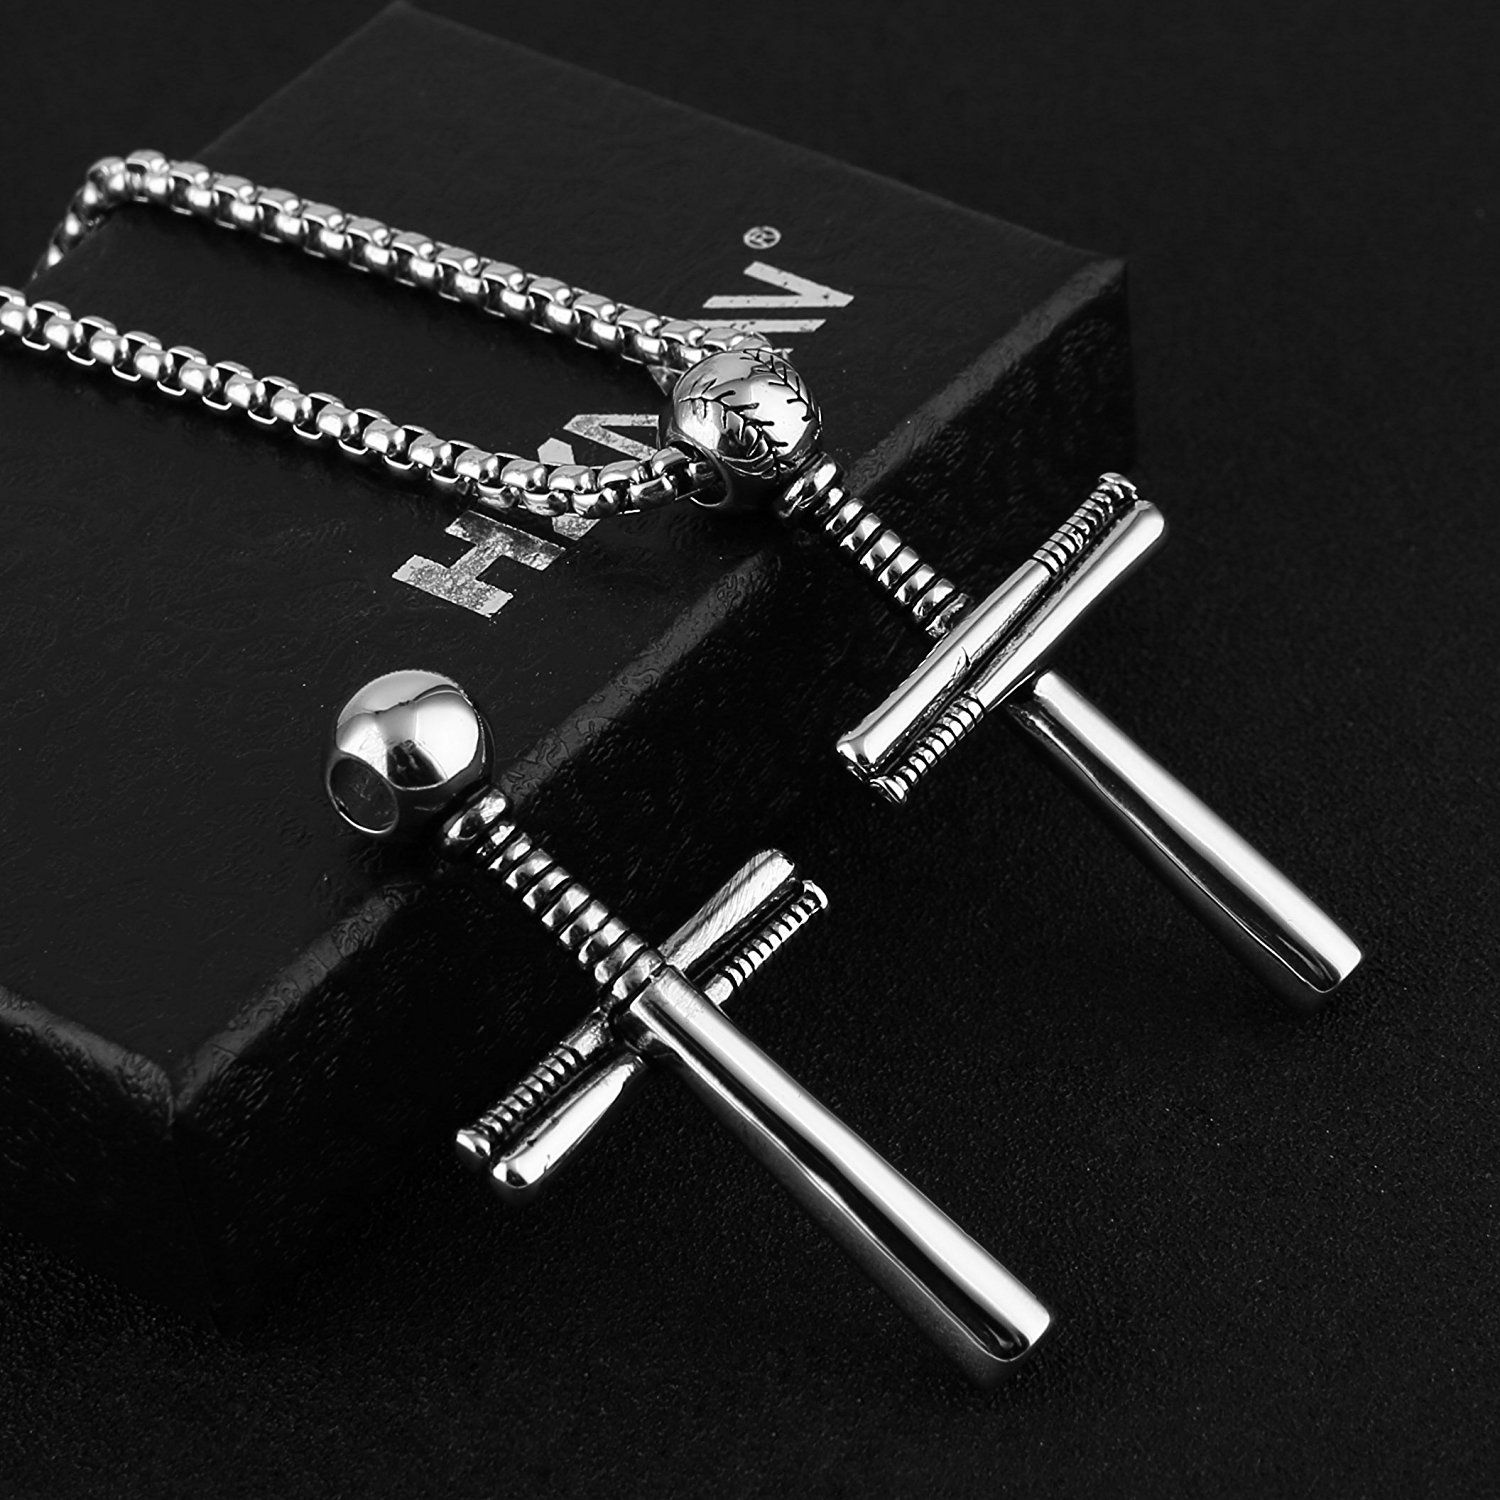 pendants baseball steel sword valentine men s snake the coiled from com mens necklace pin around yoyoon gifts boyfriend